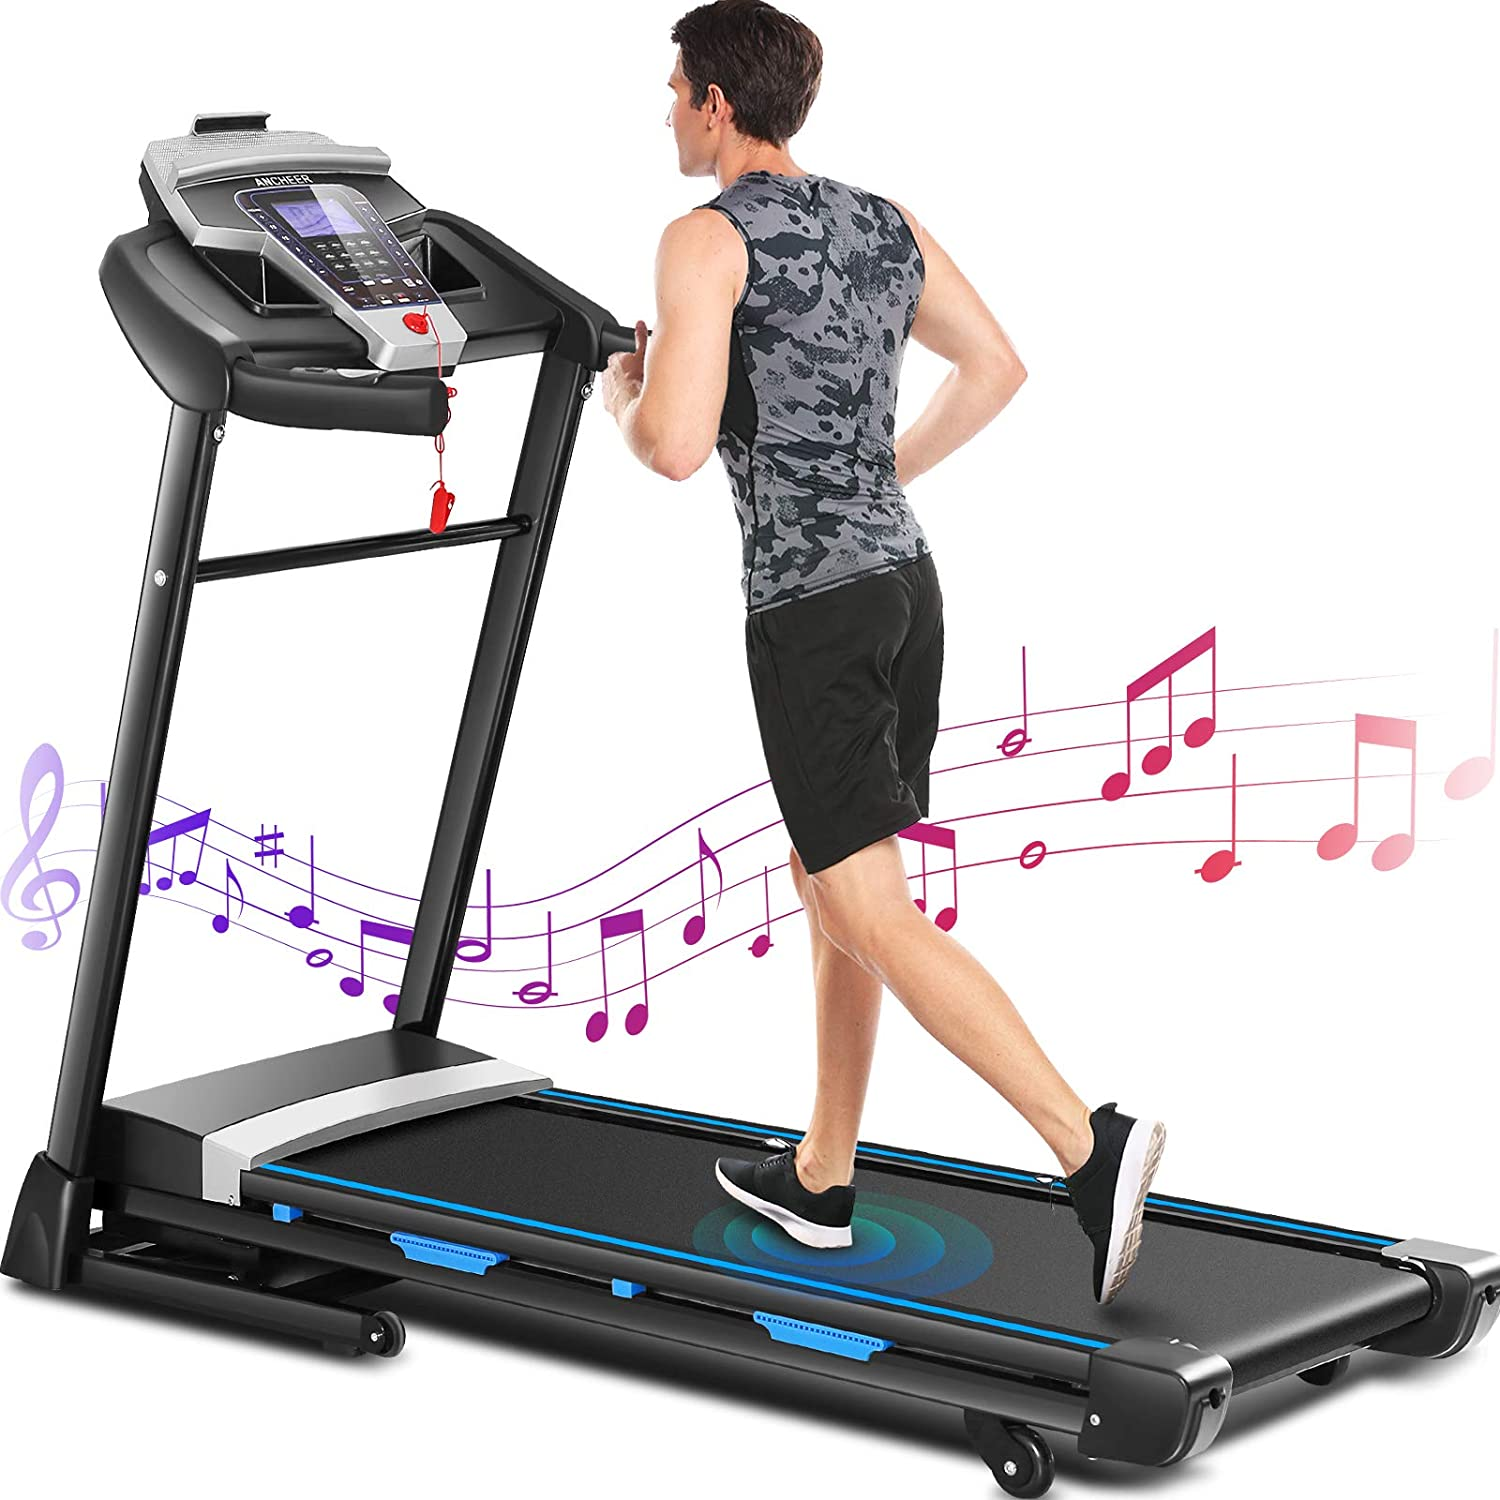 ANCHEER ET970 Treadmill 3.25 HP with Automatic Free shipping on Cheap bargain posting reviews In 15%